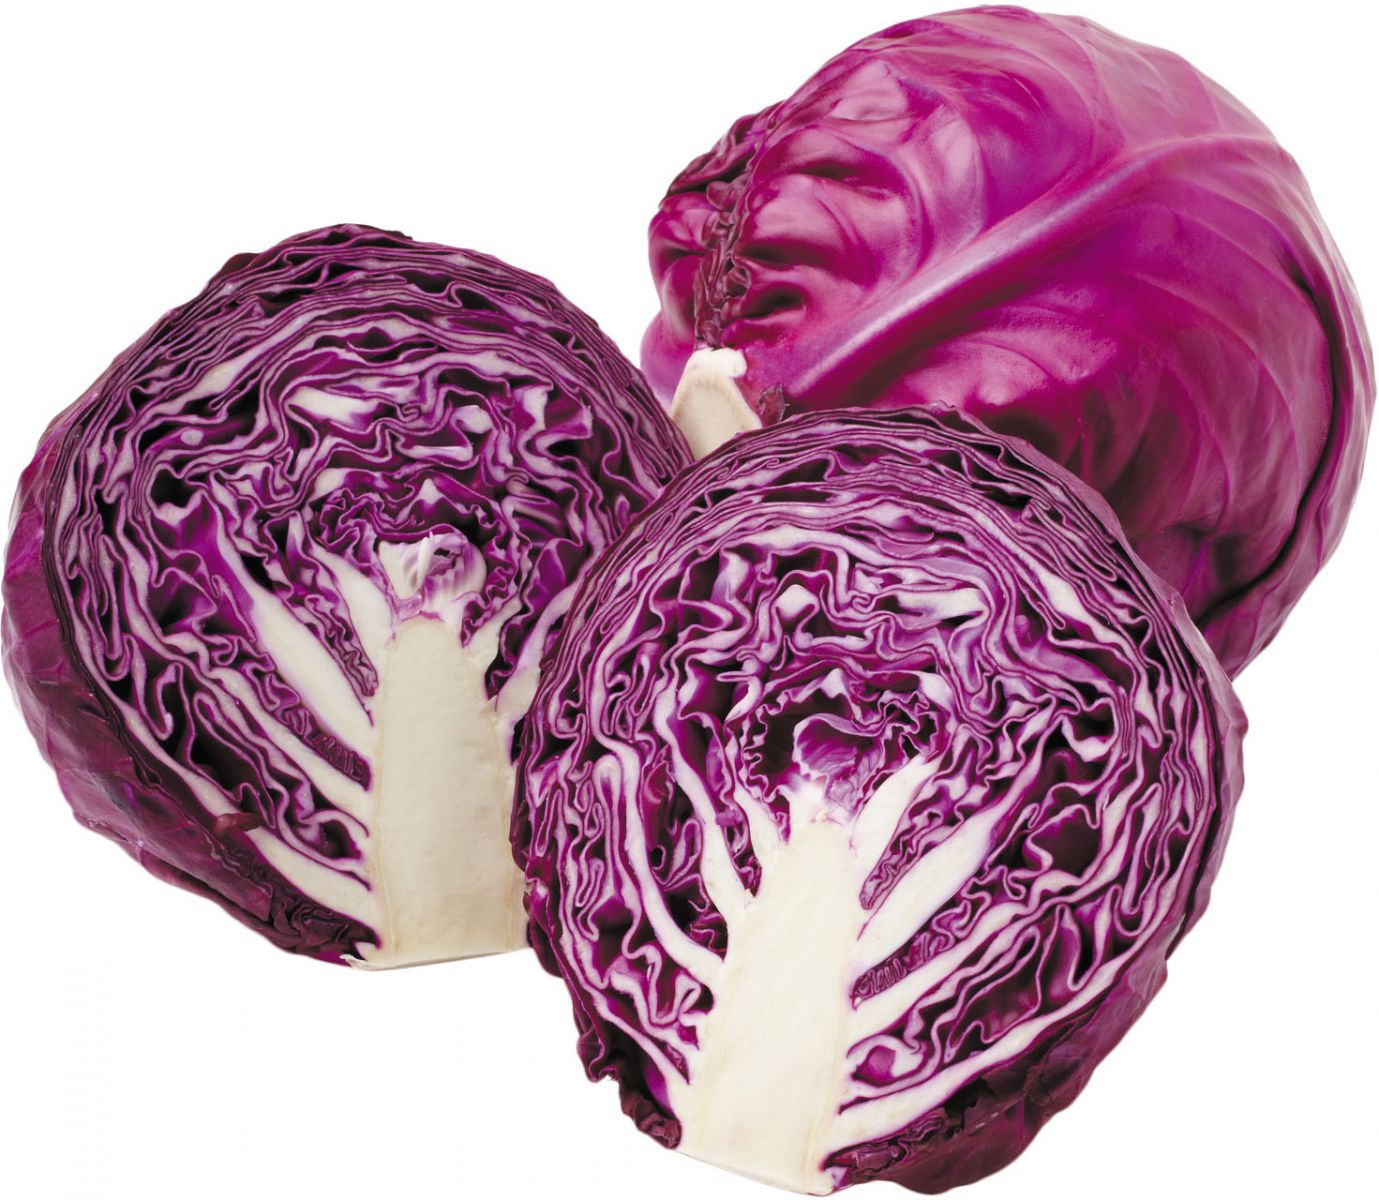 Vegetable Of The Month Red Cabbage Harvard Health